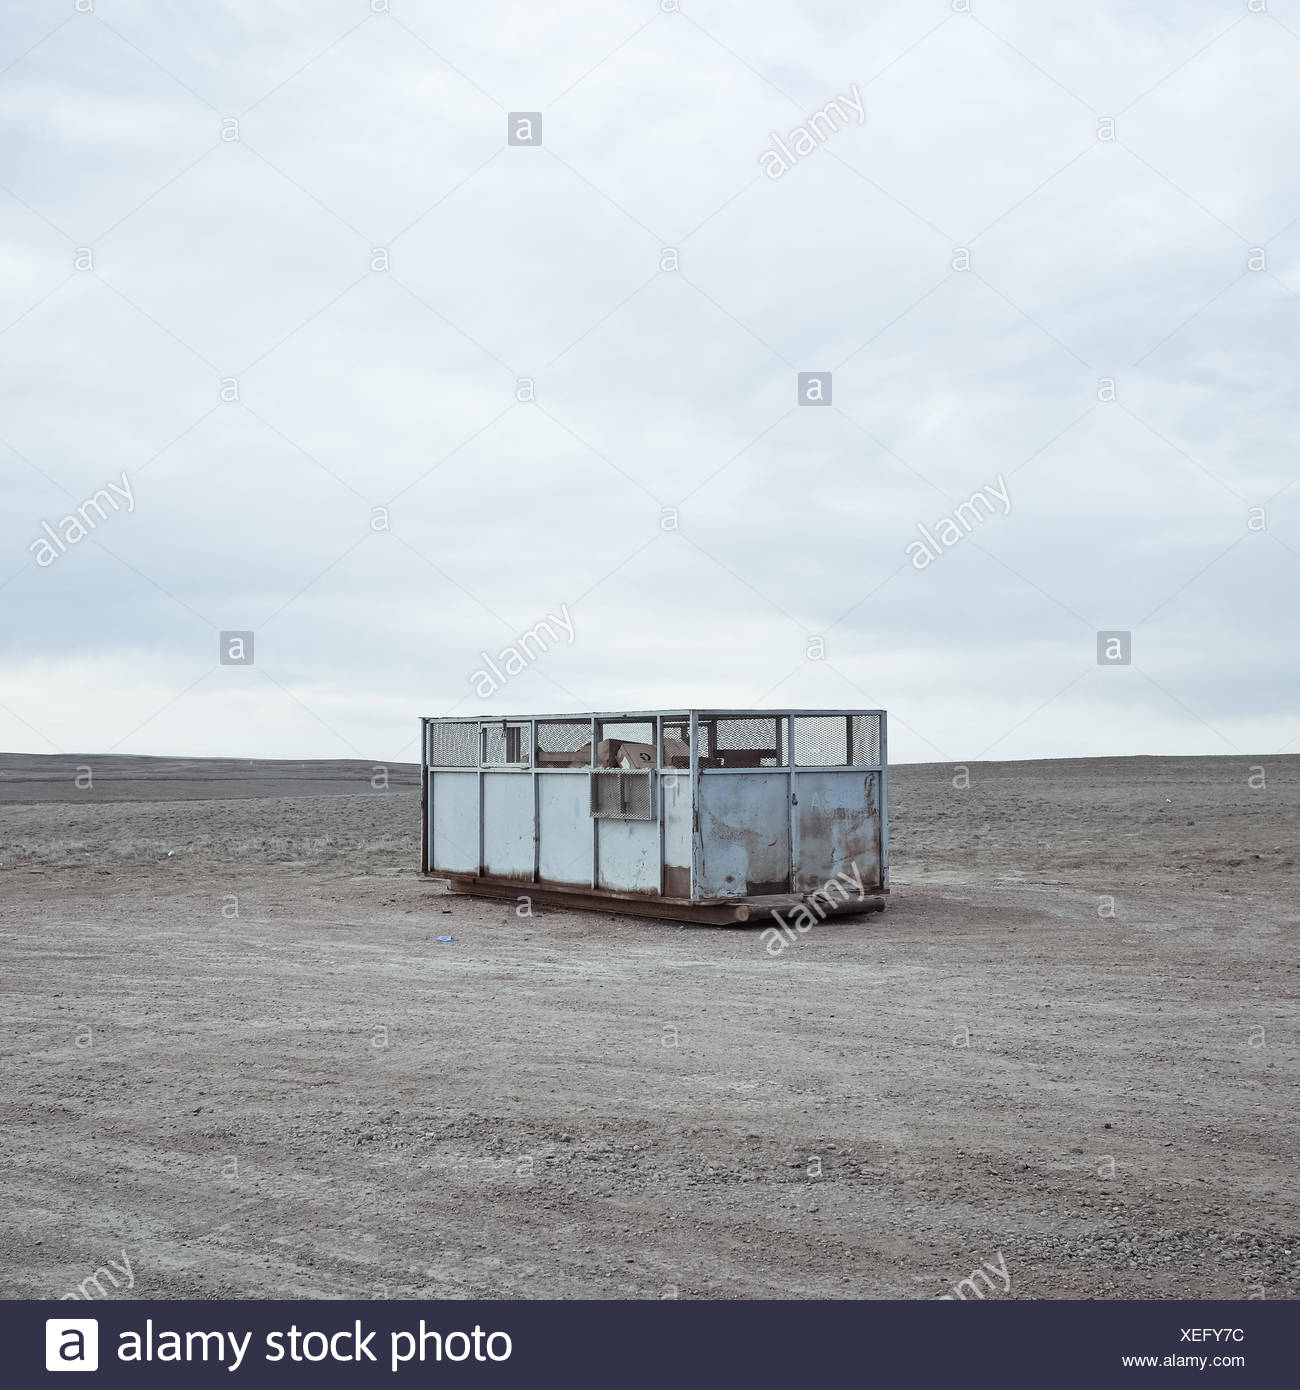 USA, Wyoming, Garbage container on prairie - Stock Image